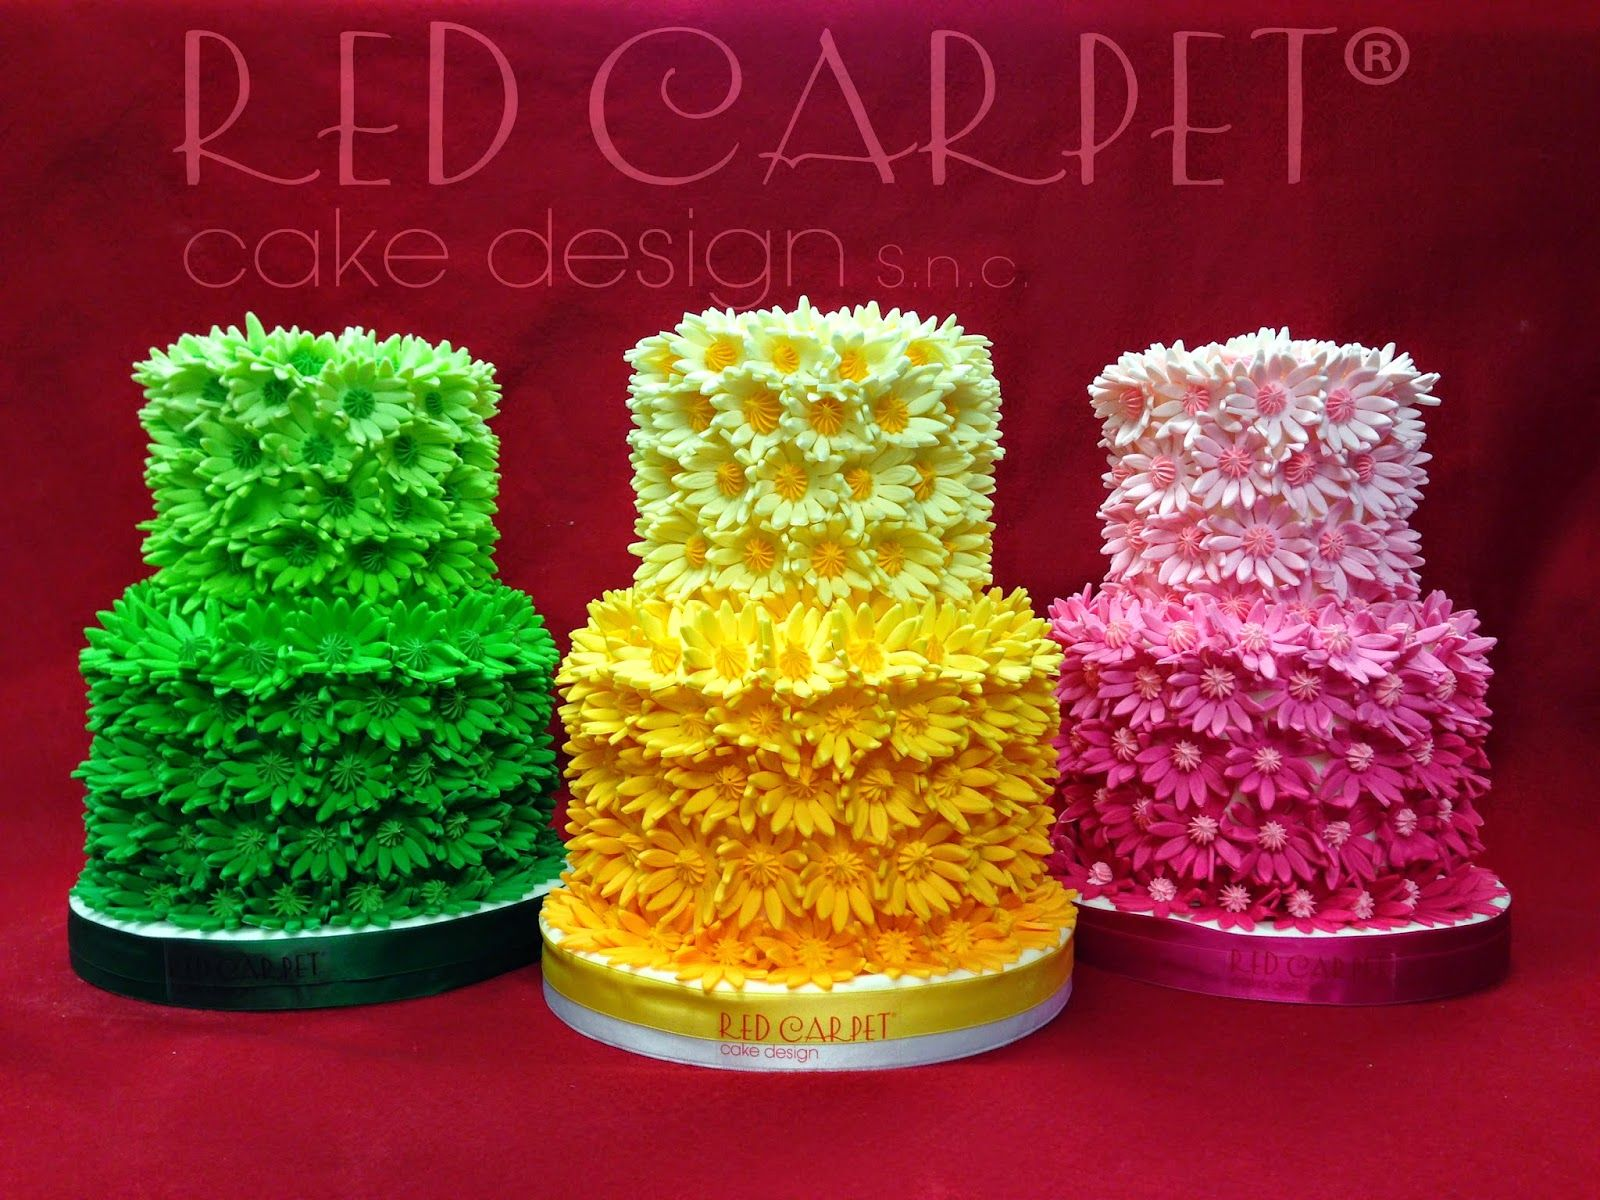 VANISHING COLOURS CAKES- by Red Carpet Cake Design®